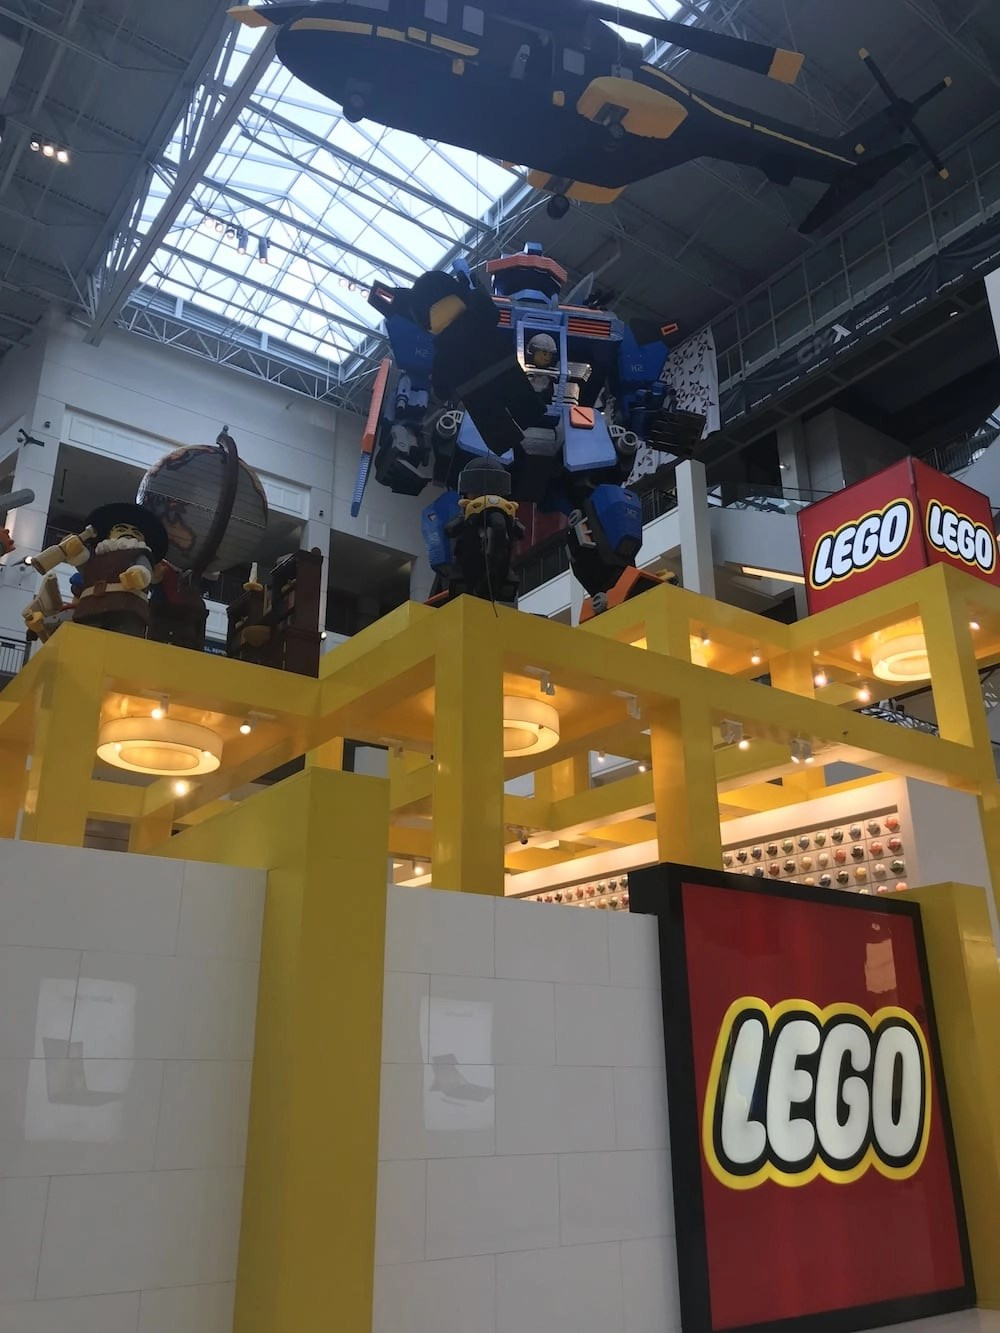 Things to do at Mall of America Lego Store